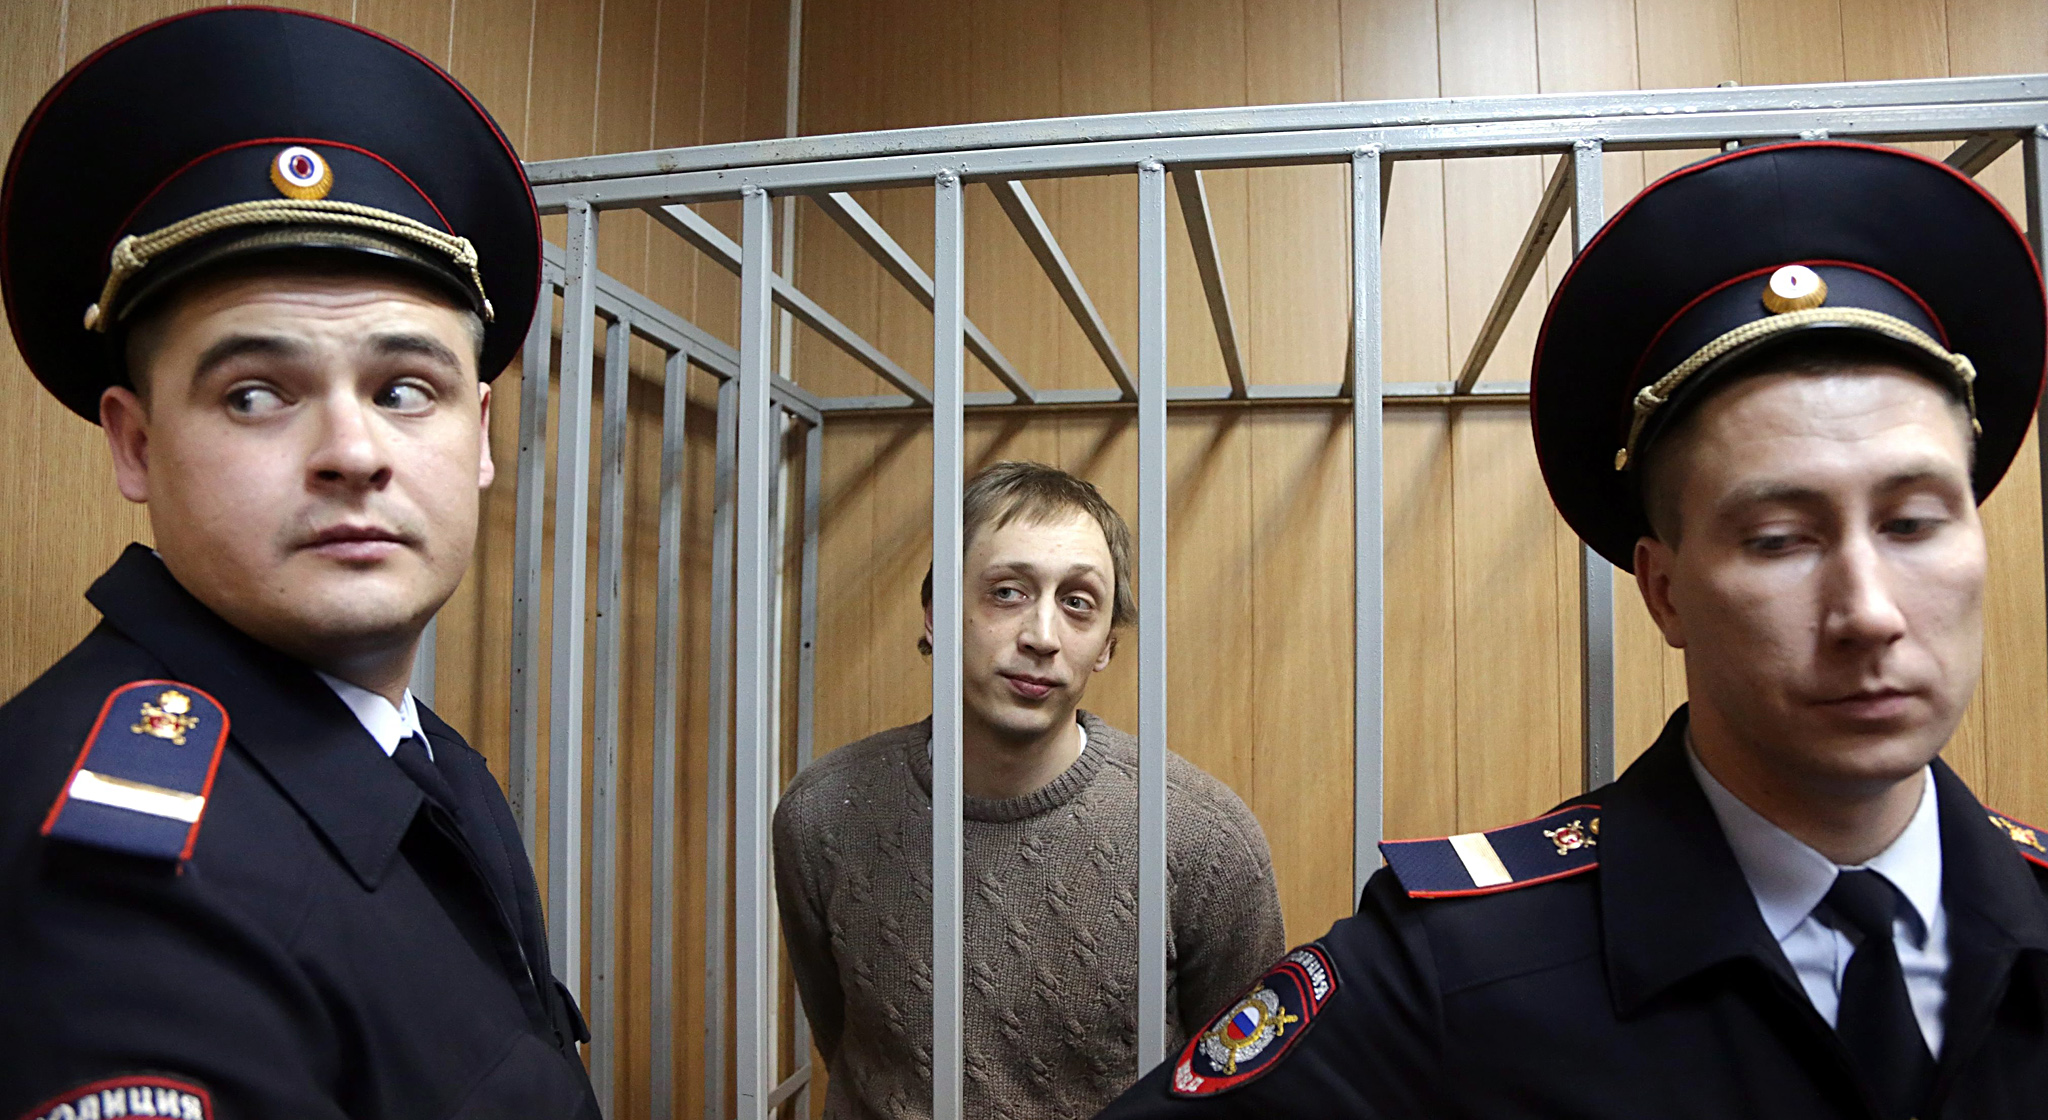 Pavel Dmitrichenko trial continues...epa03919128 Bolshoi Ballet dancer Pavel Dmitrichenko (C) is seen in the defendant's cage during a court hearing in Moscow, Russia, 22 October 2013. Dmitrichenko and two other men are accused of carrying out an attack on the famous troupe's master Sergei Filin on 17 January 2013.  EPA/MAXIM SHIPENKOV